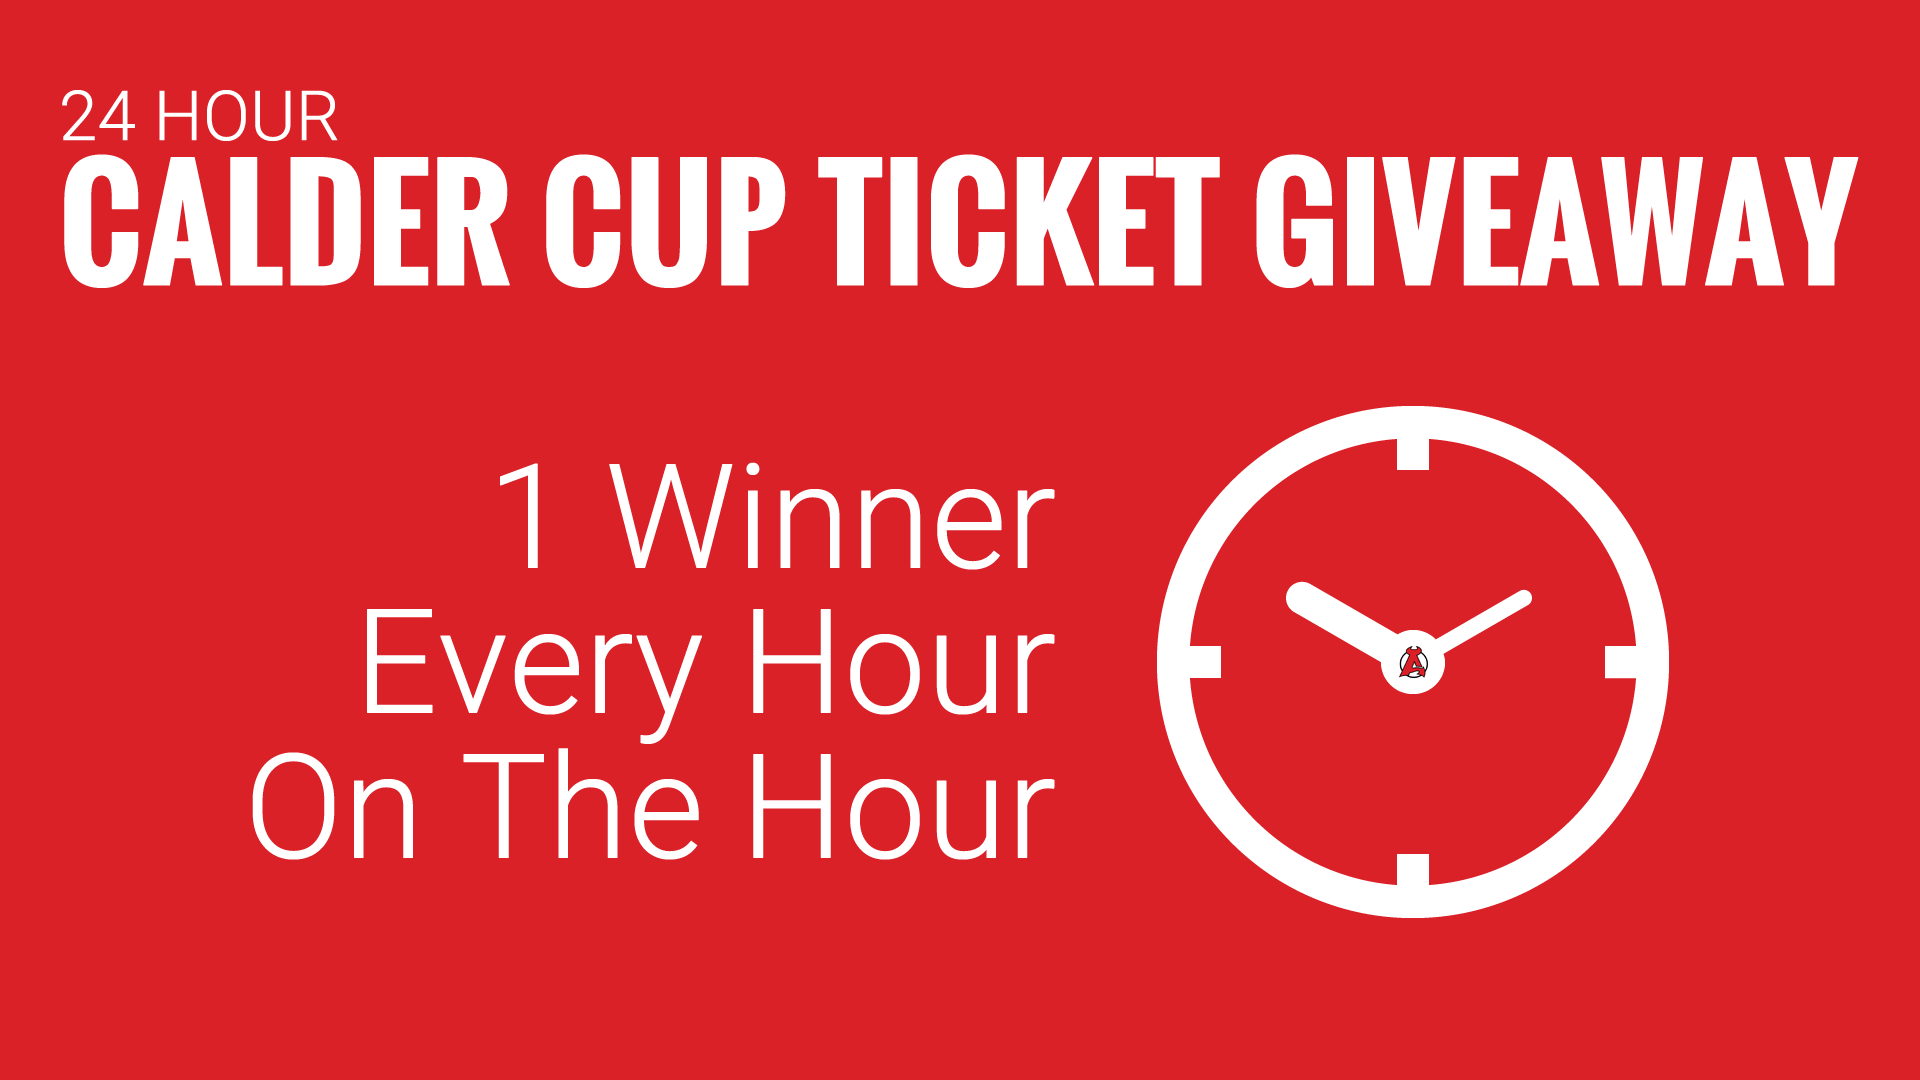 Calder-Cup-Ticket-Giveaway